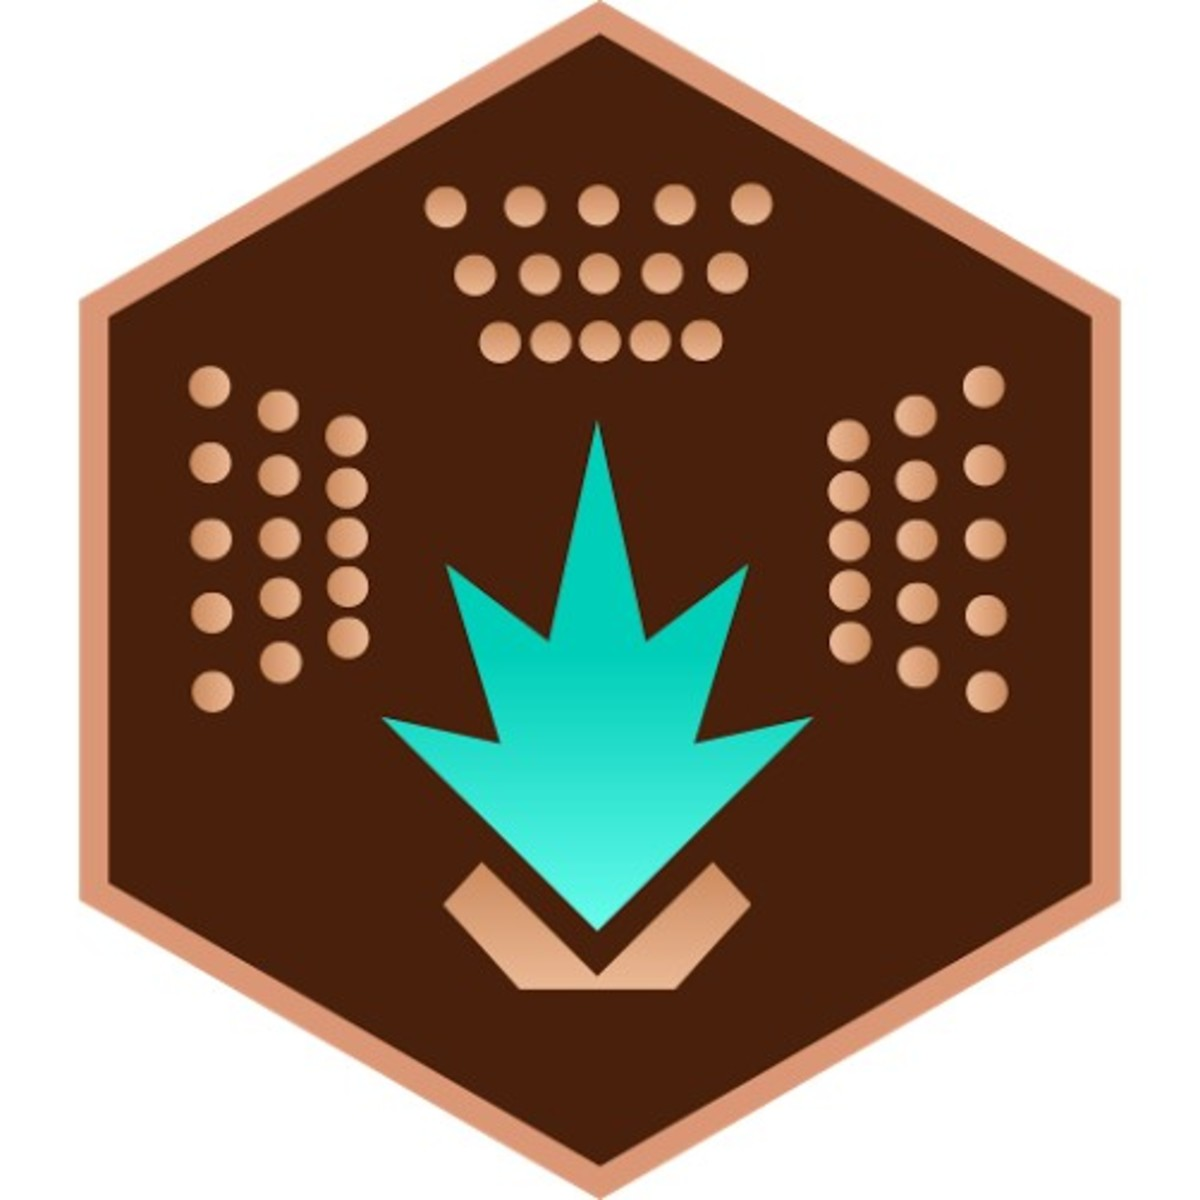 The Engineer Badge in Ingress